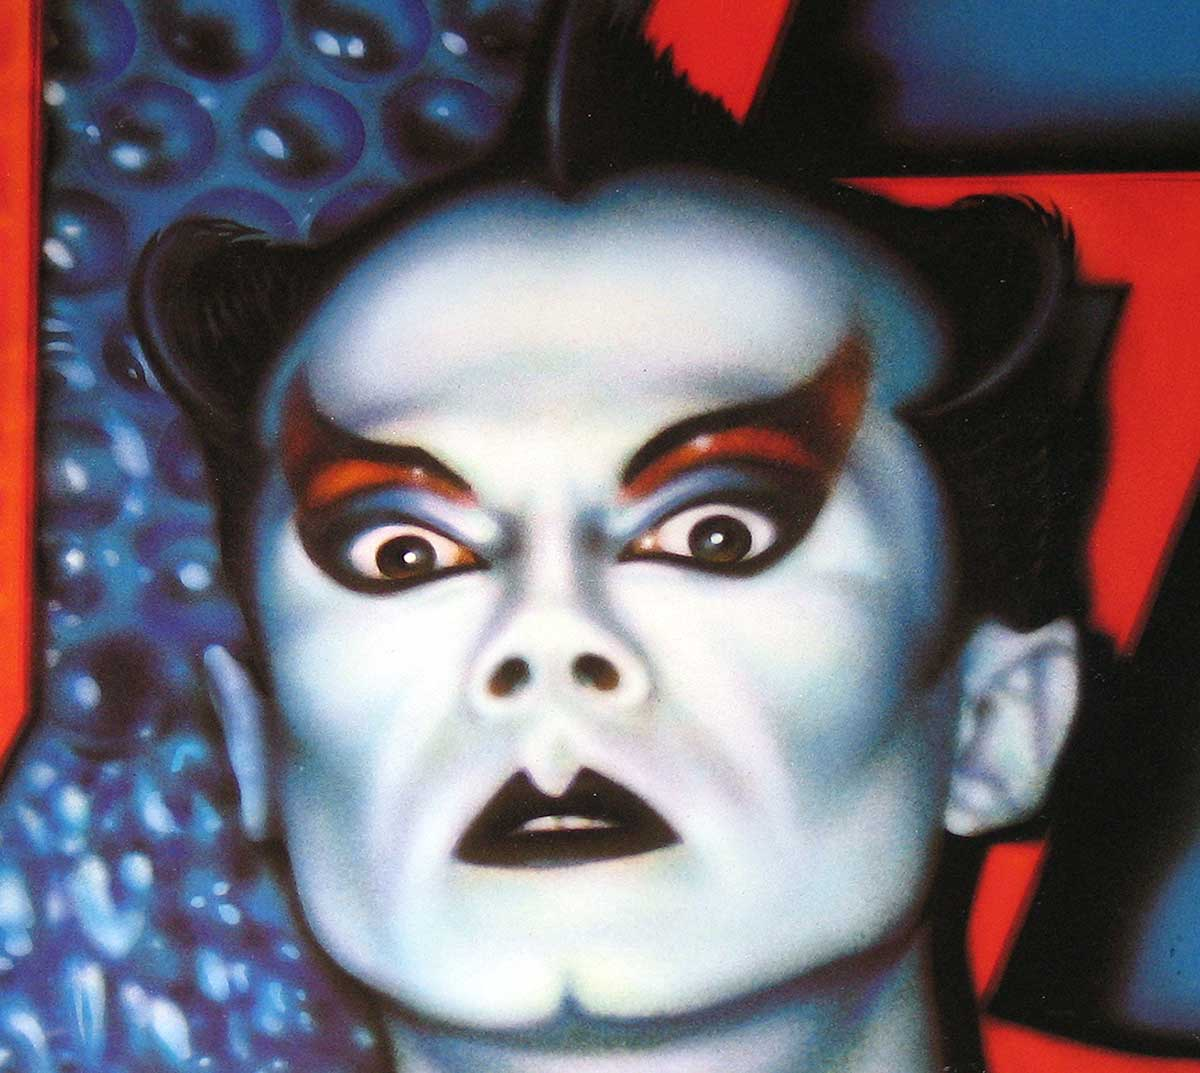 large photo of the album front cover of: KLAUS NOMI